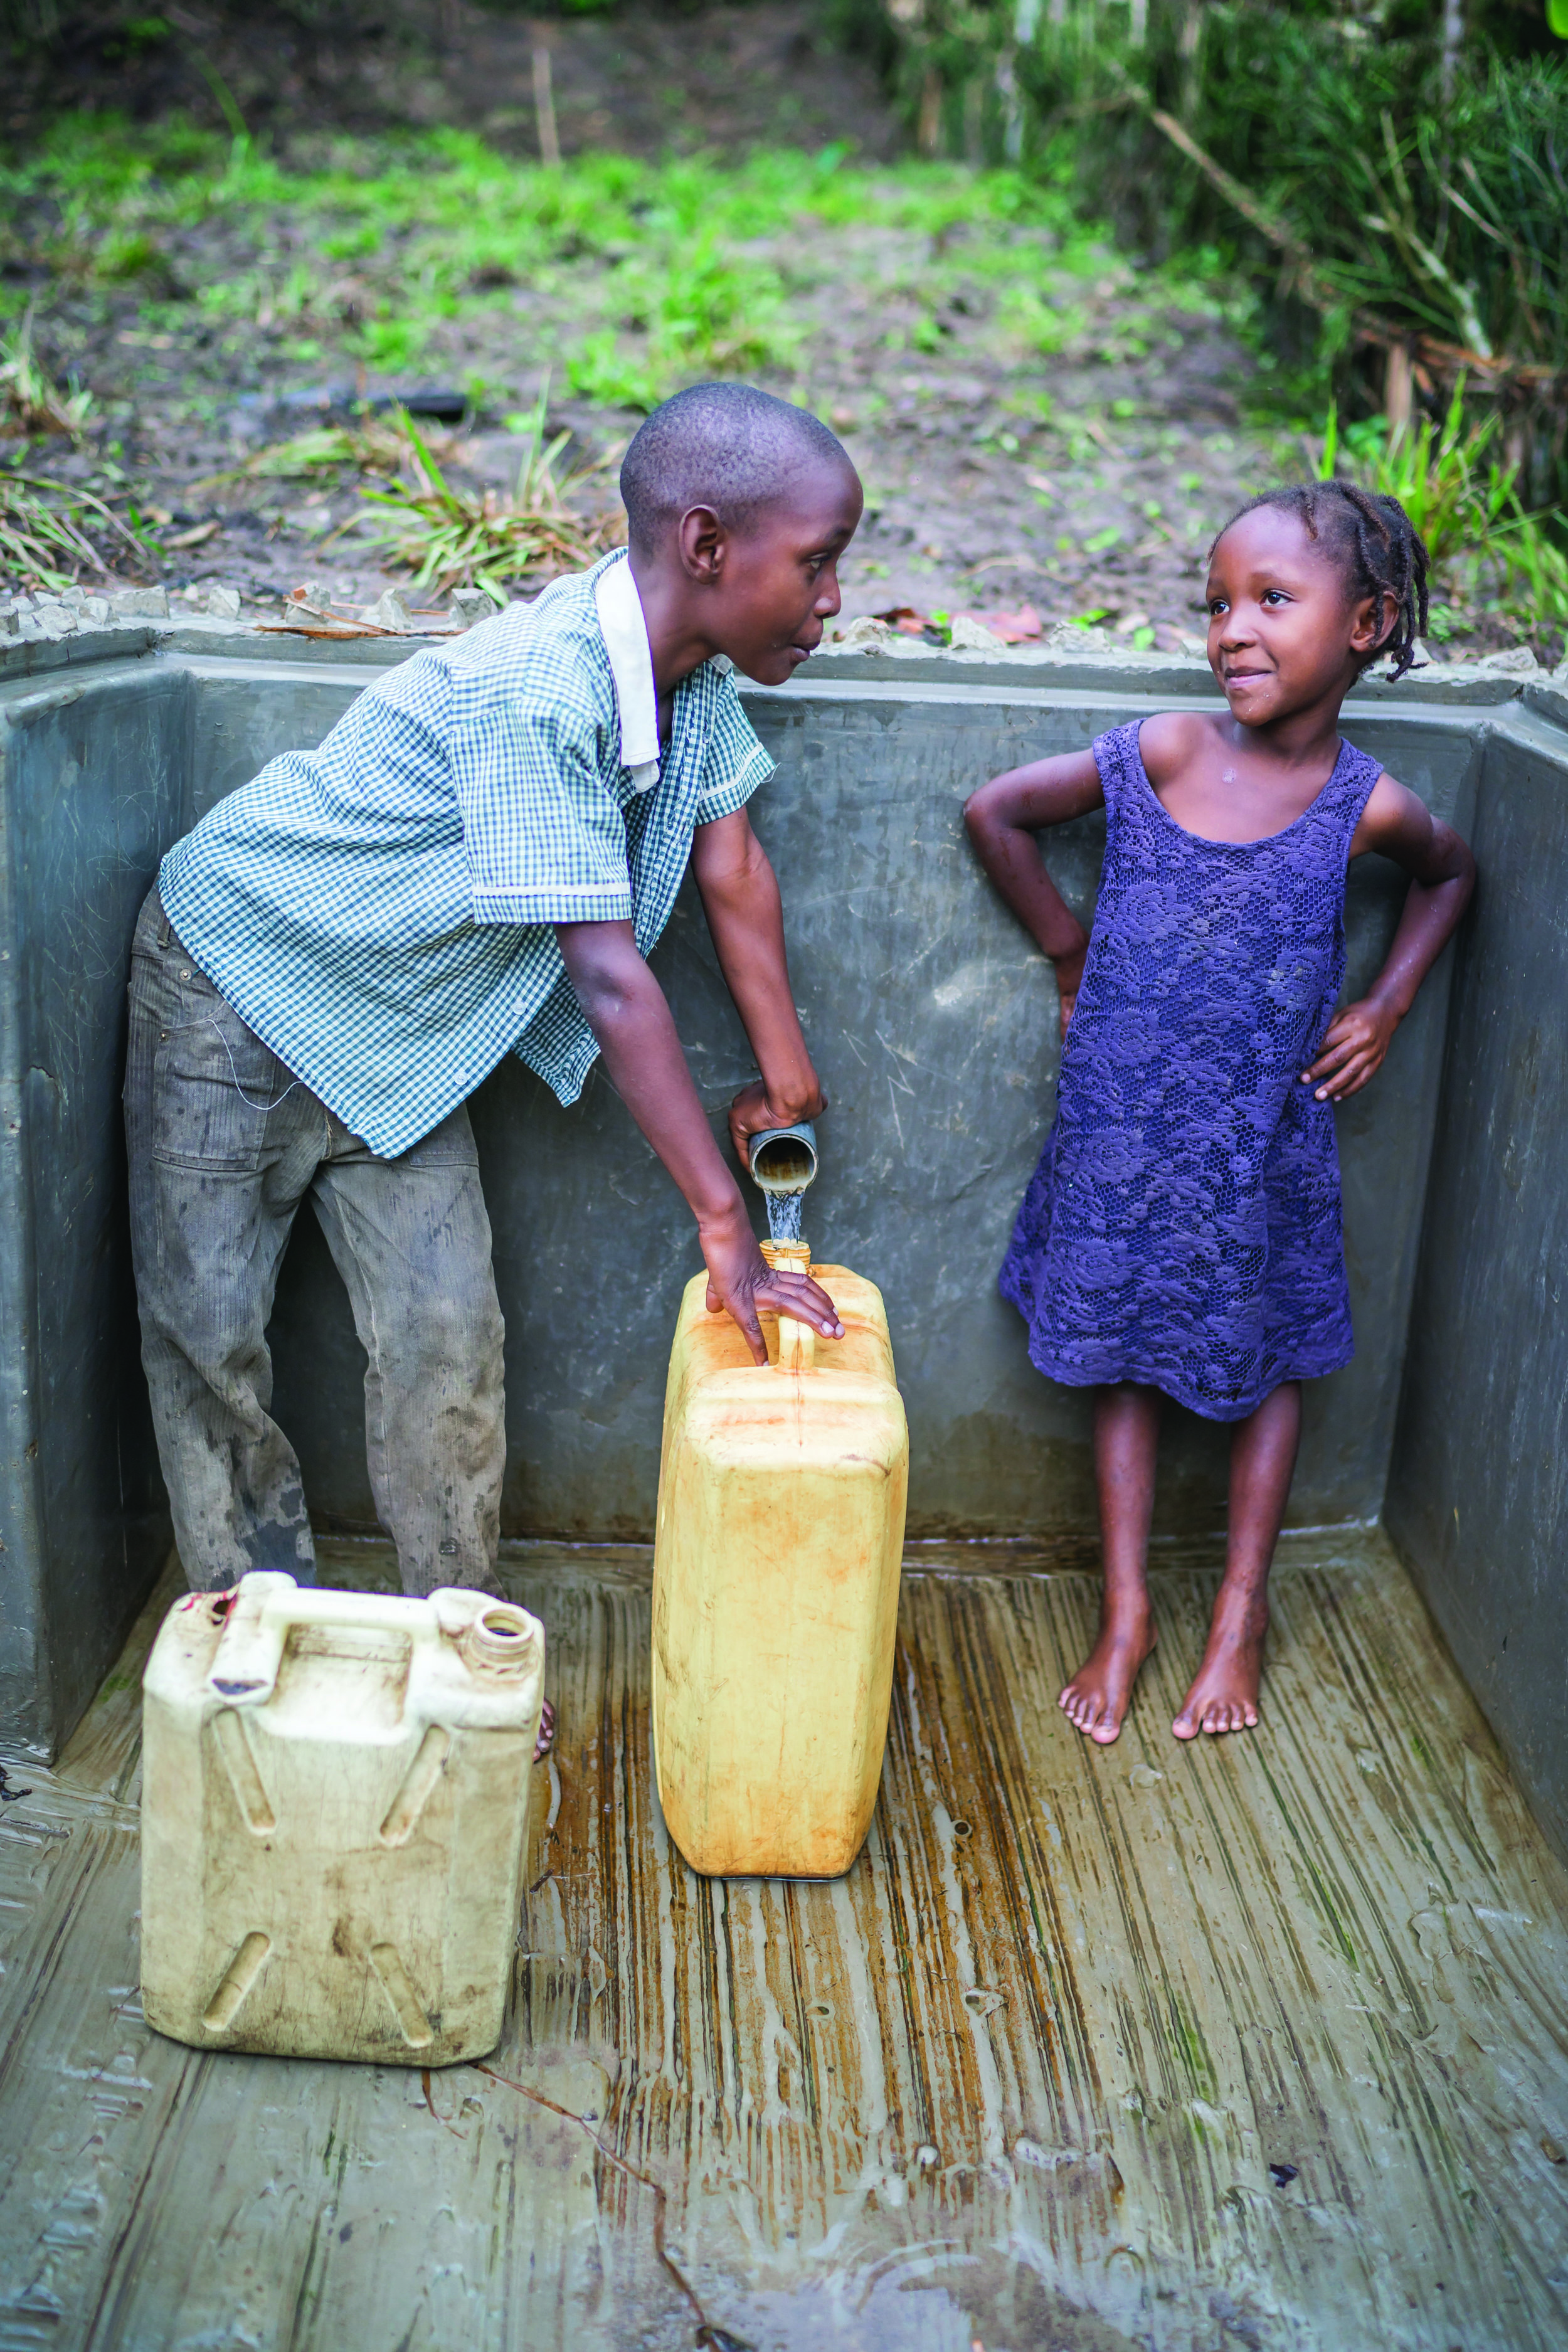 A Ugandan village now has safe, healthy water